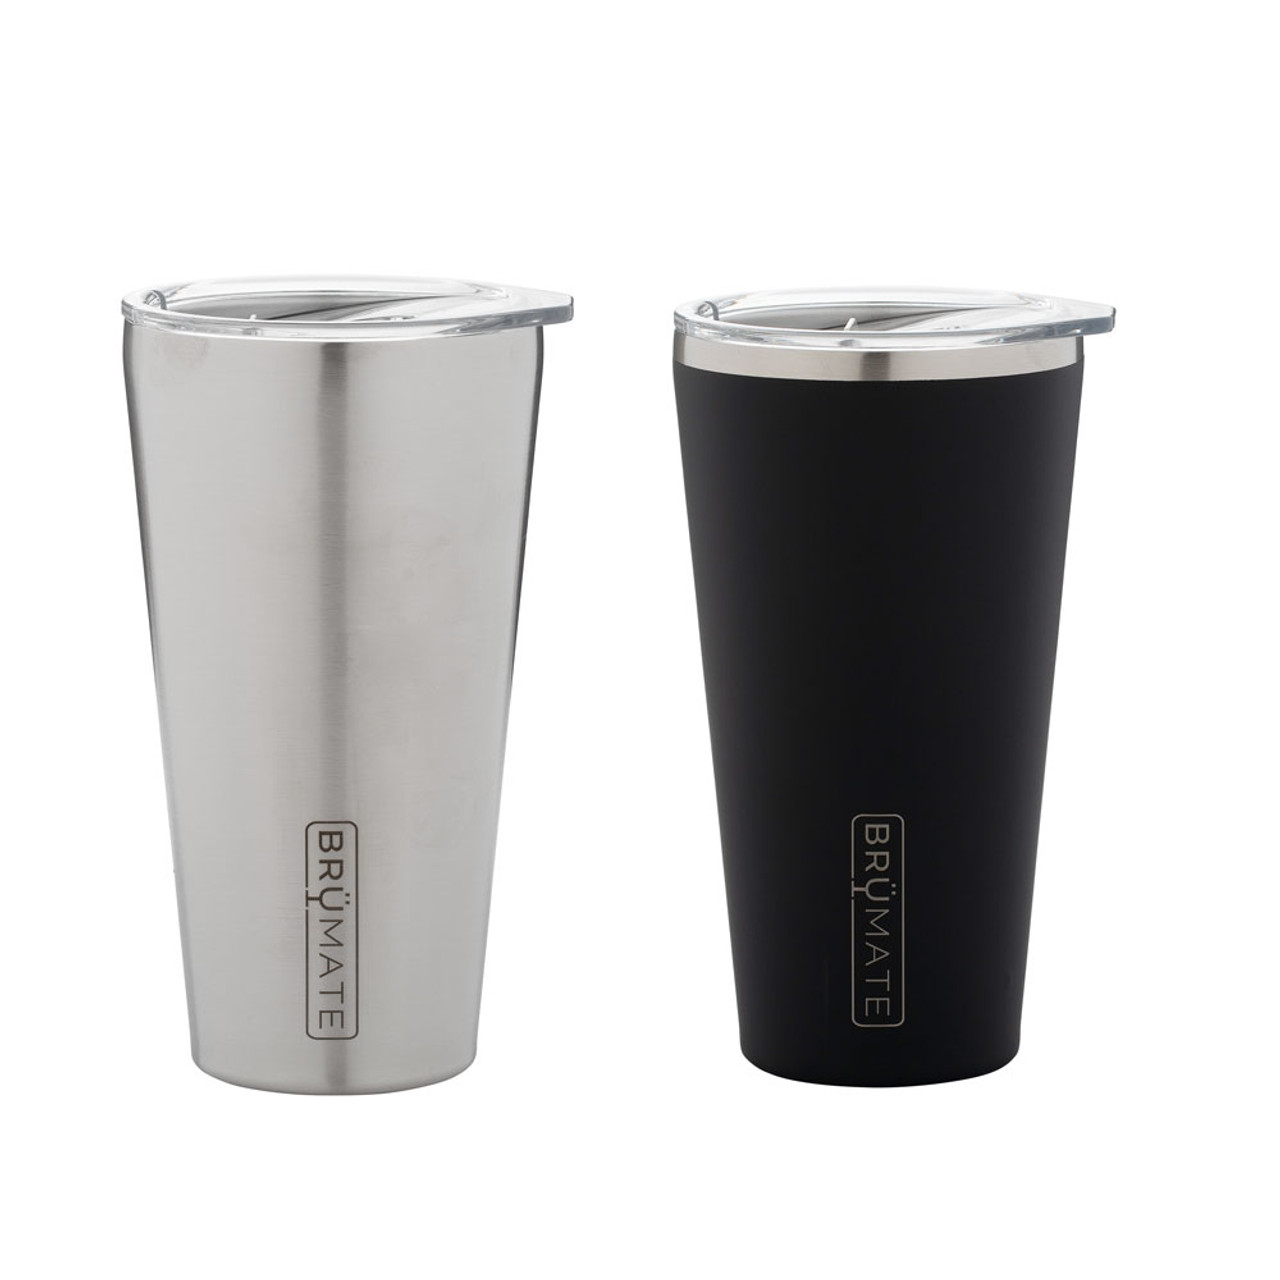 Brümate Imperial Pint With Splash Proof Lid 20 Oz Triple Insulated Stainless Steel Kegworks